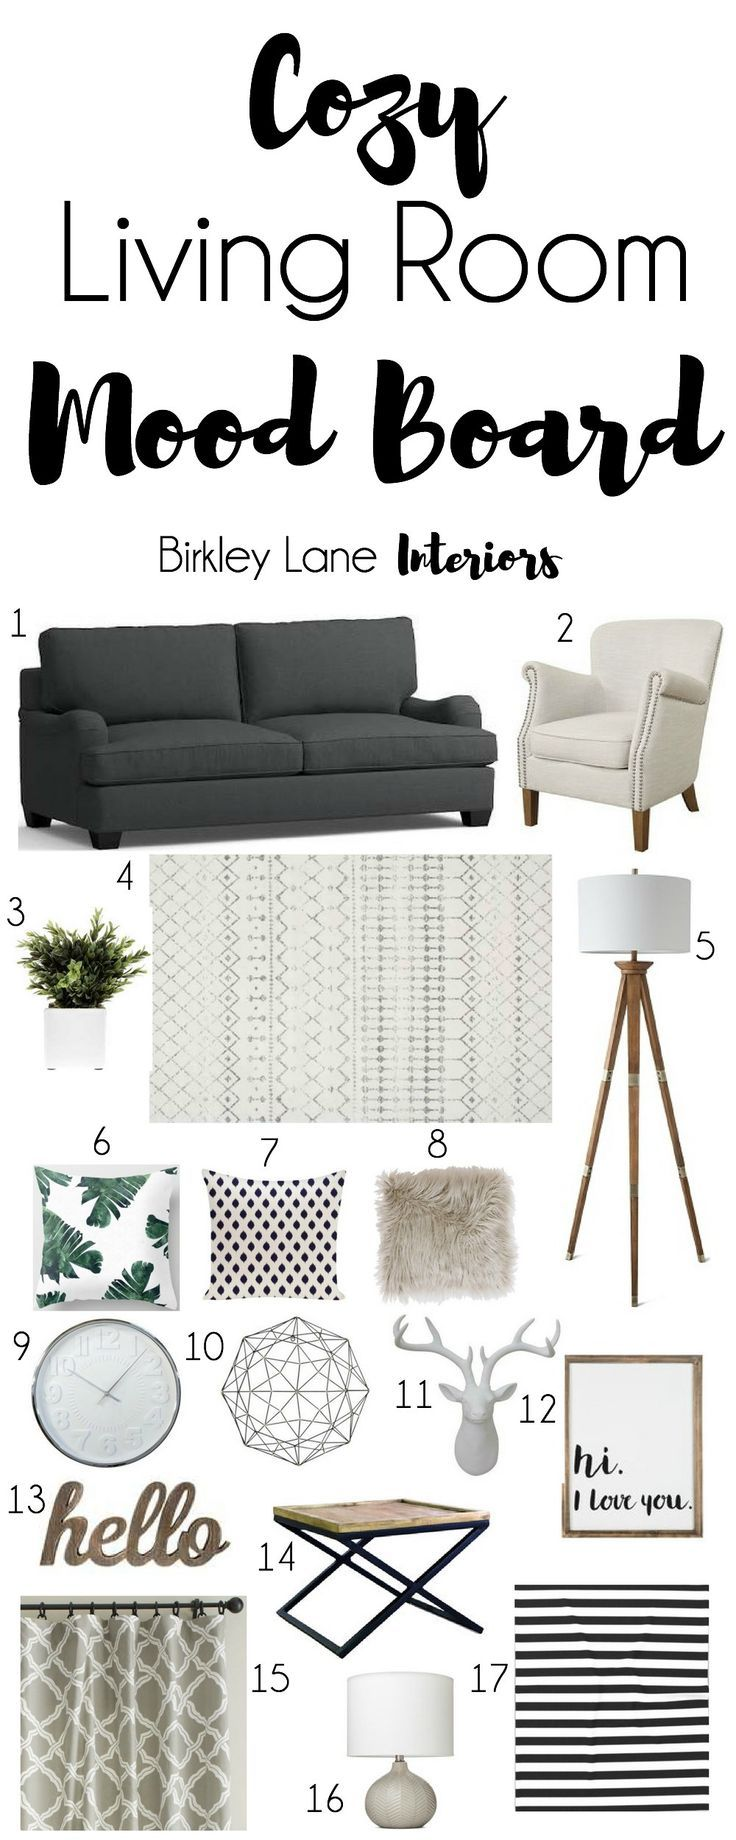 Living Room Furniture List 332 Best Images About Living Room Decor On Pinterest Futons